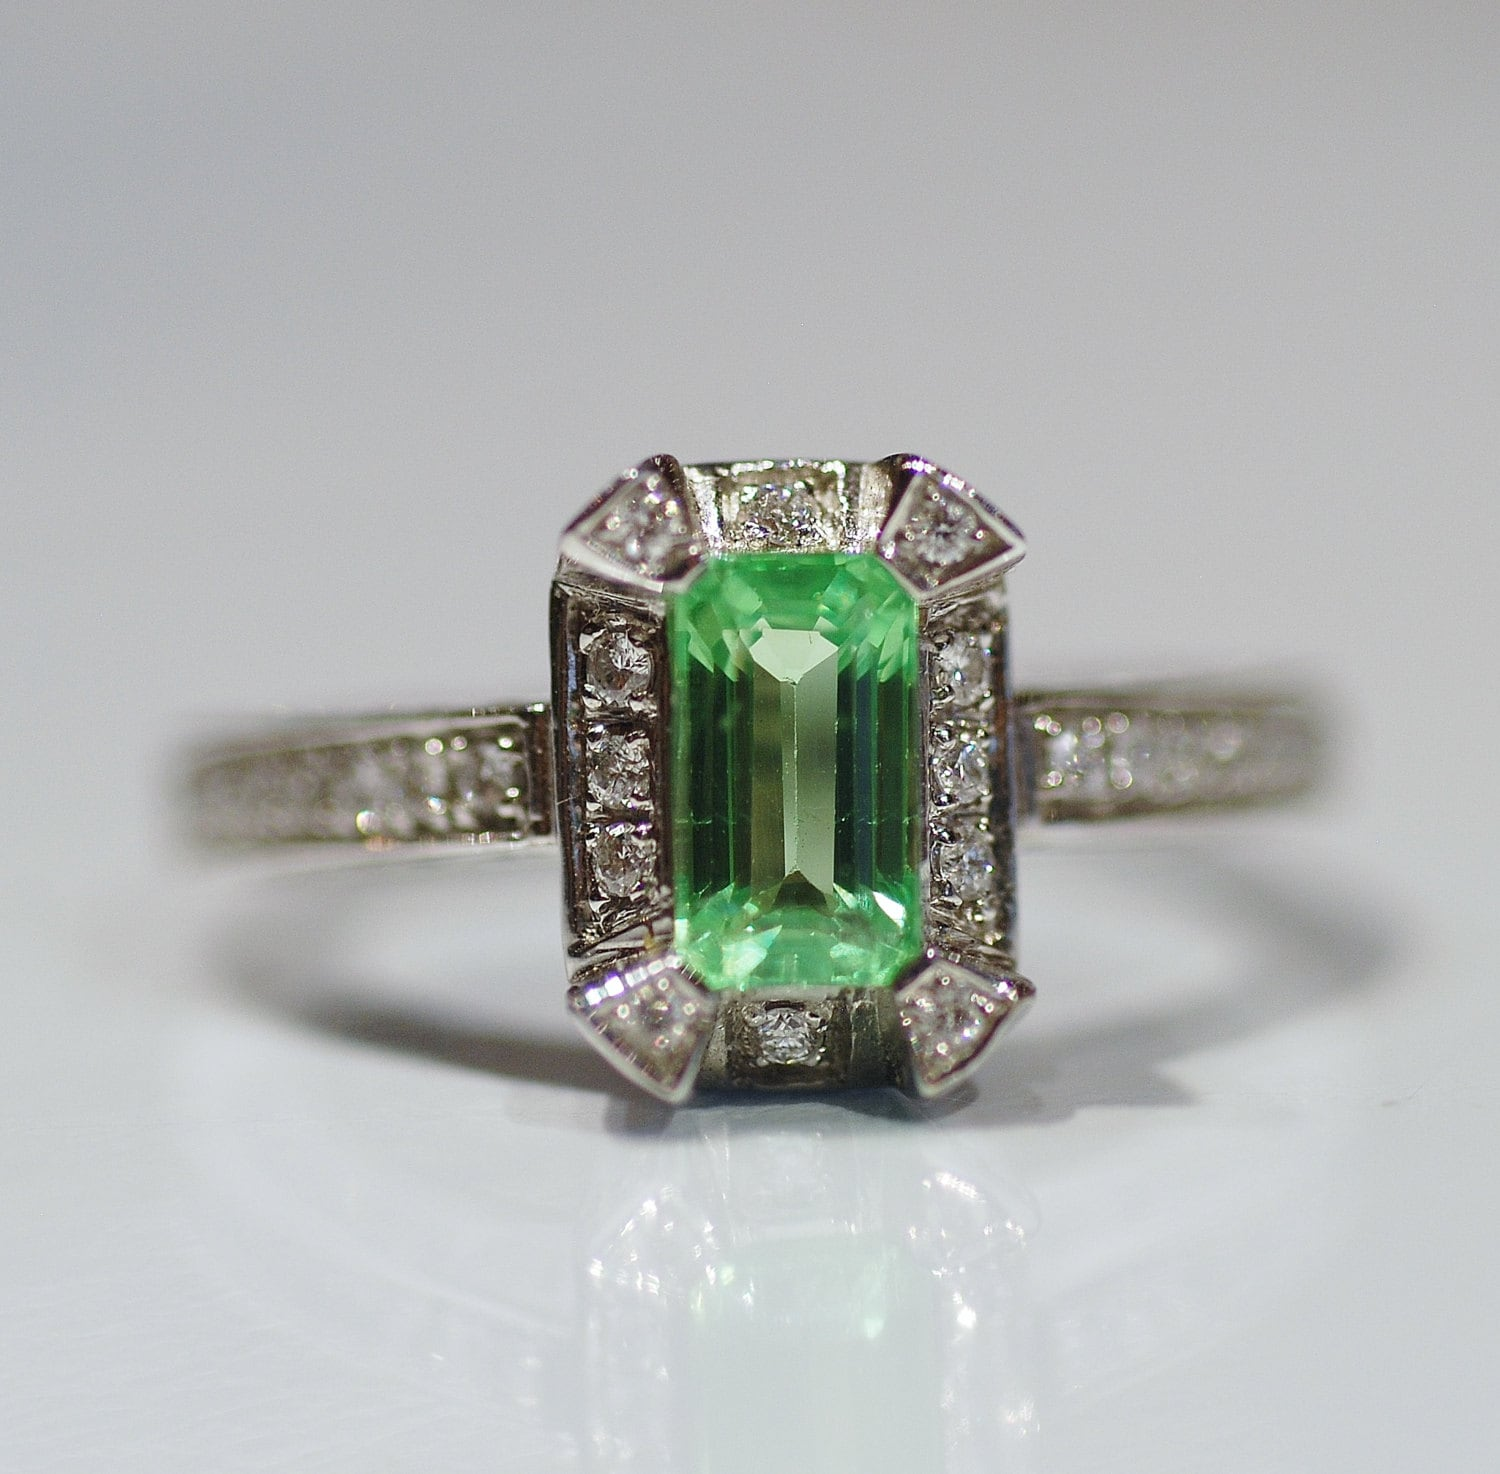 emerald cut green garnet and ring in white